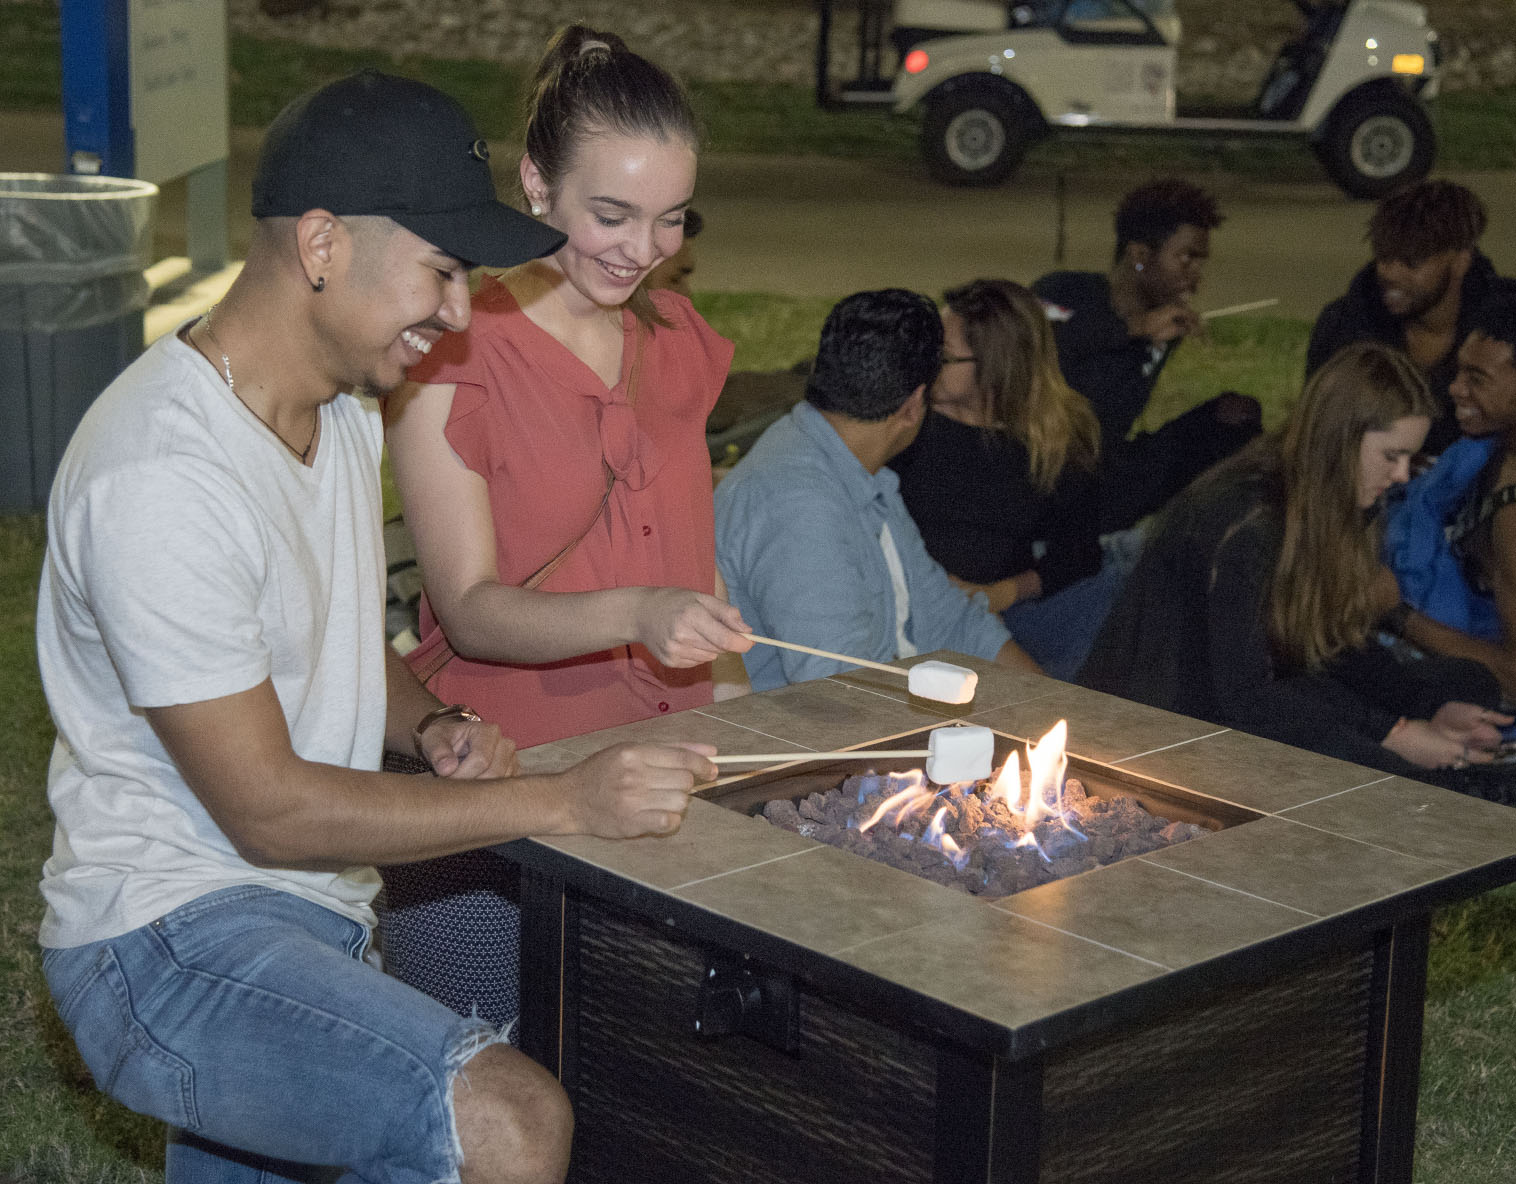 NE students Ramon Gasca and Bridget Faricy roast marshmallows to make s'mores at firepits located around the event on Nov. 15 on NE Campus.